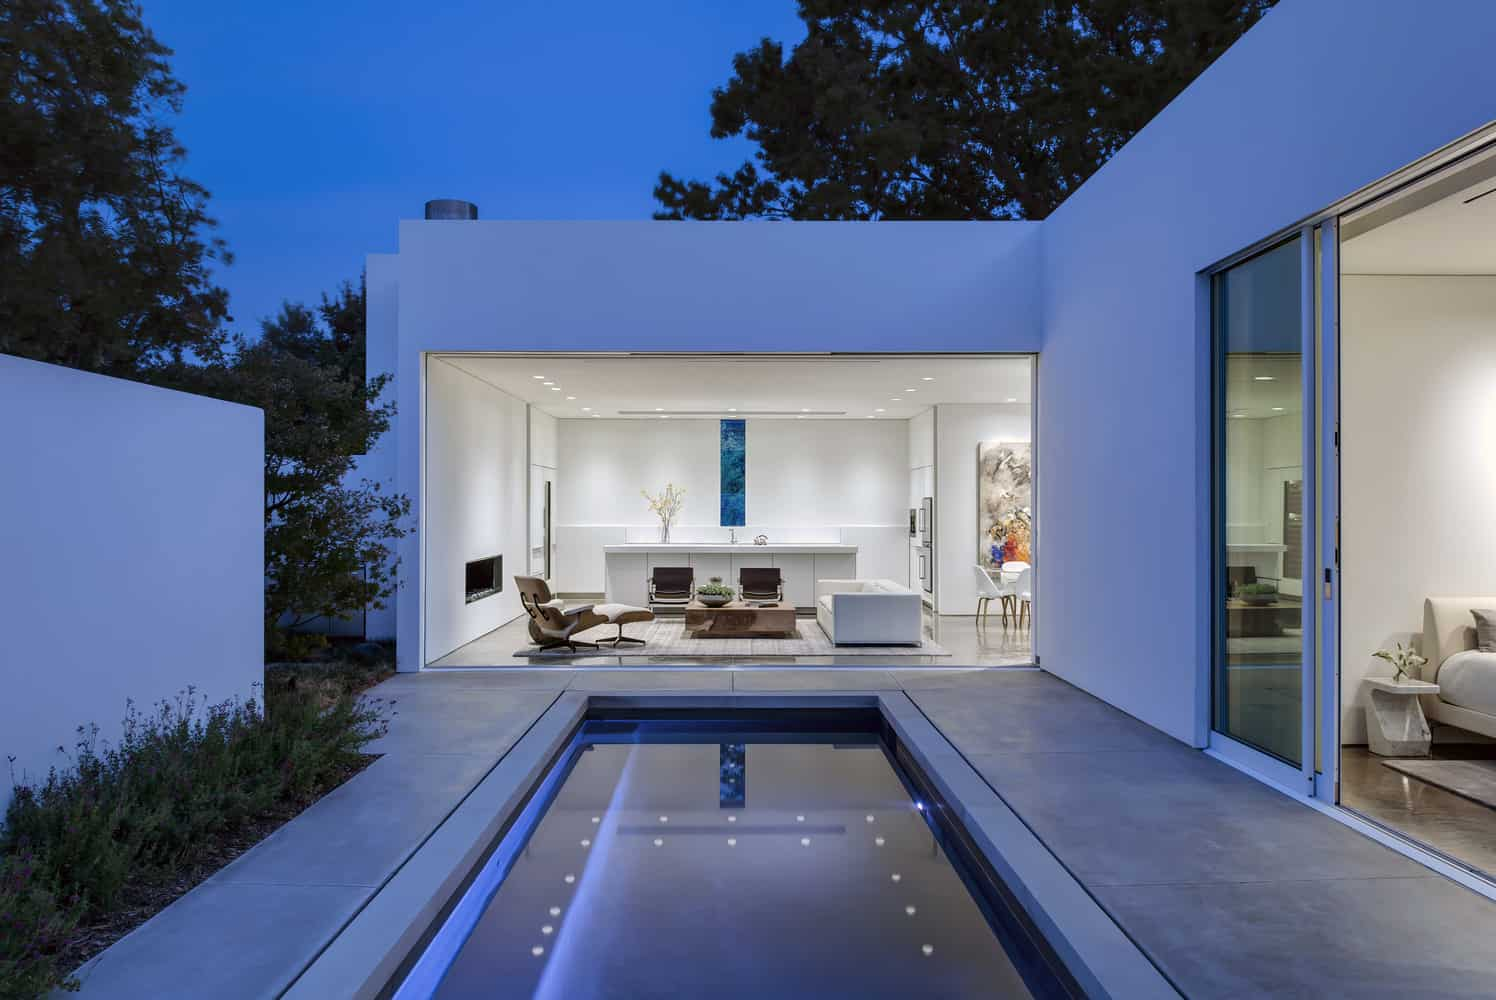 Corner Showcase Designs For Living Room Small Courtyard Swimming Pool Home